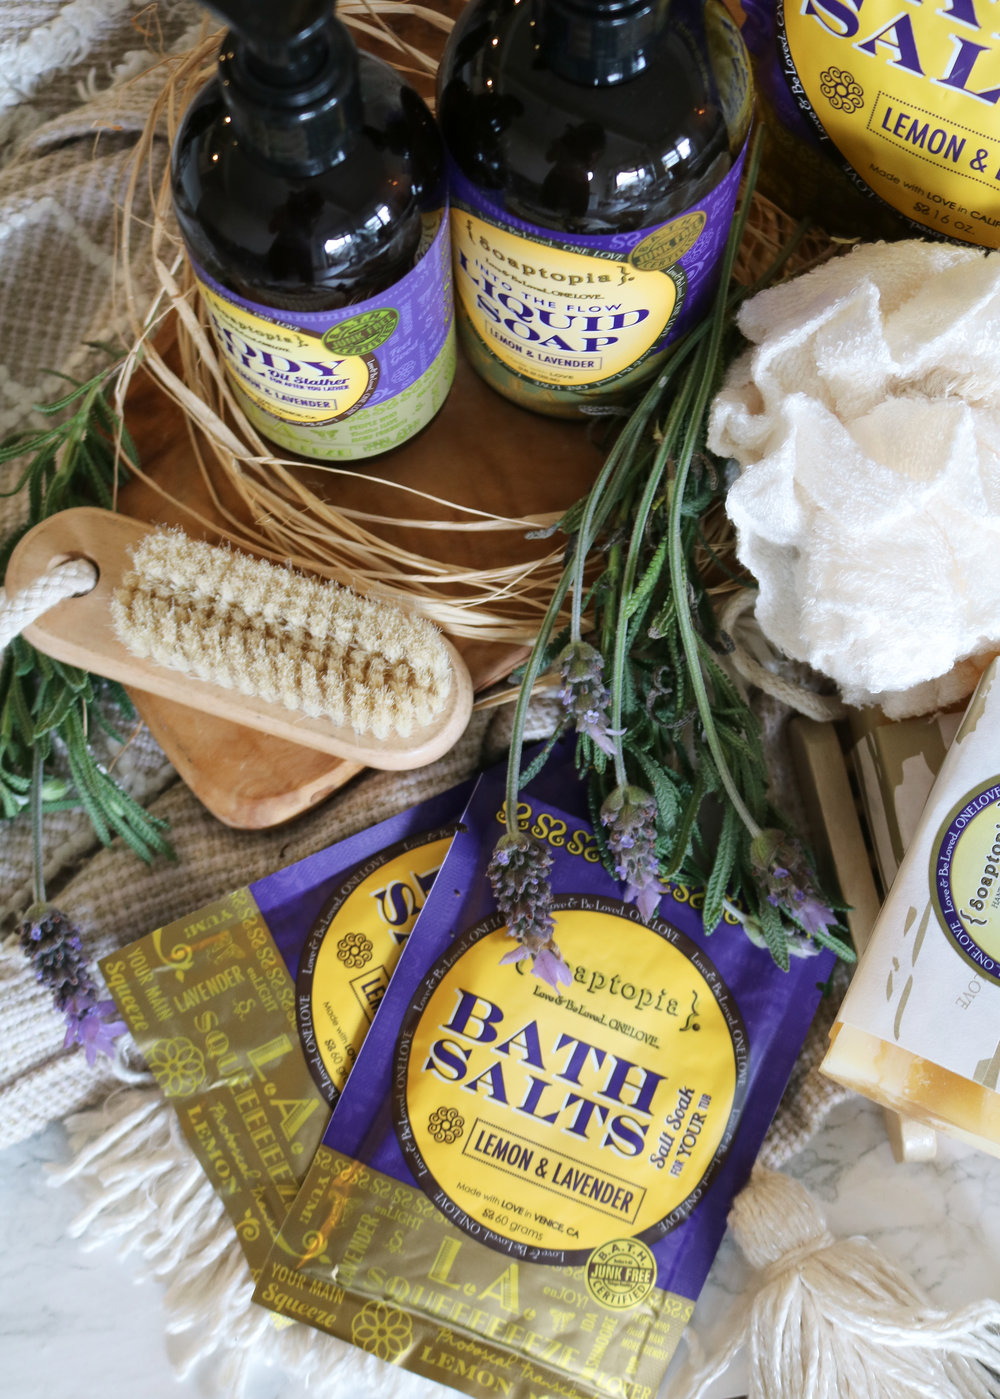 The perfect bath time ritual (& product line) to unwind at night - soaptopia lemon-lavender collection review